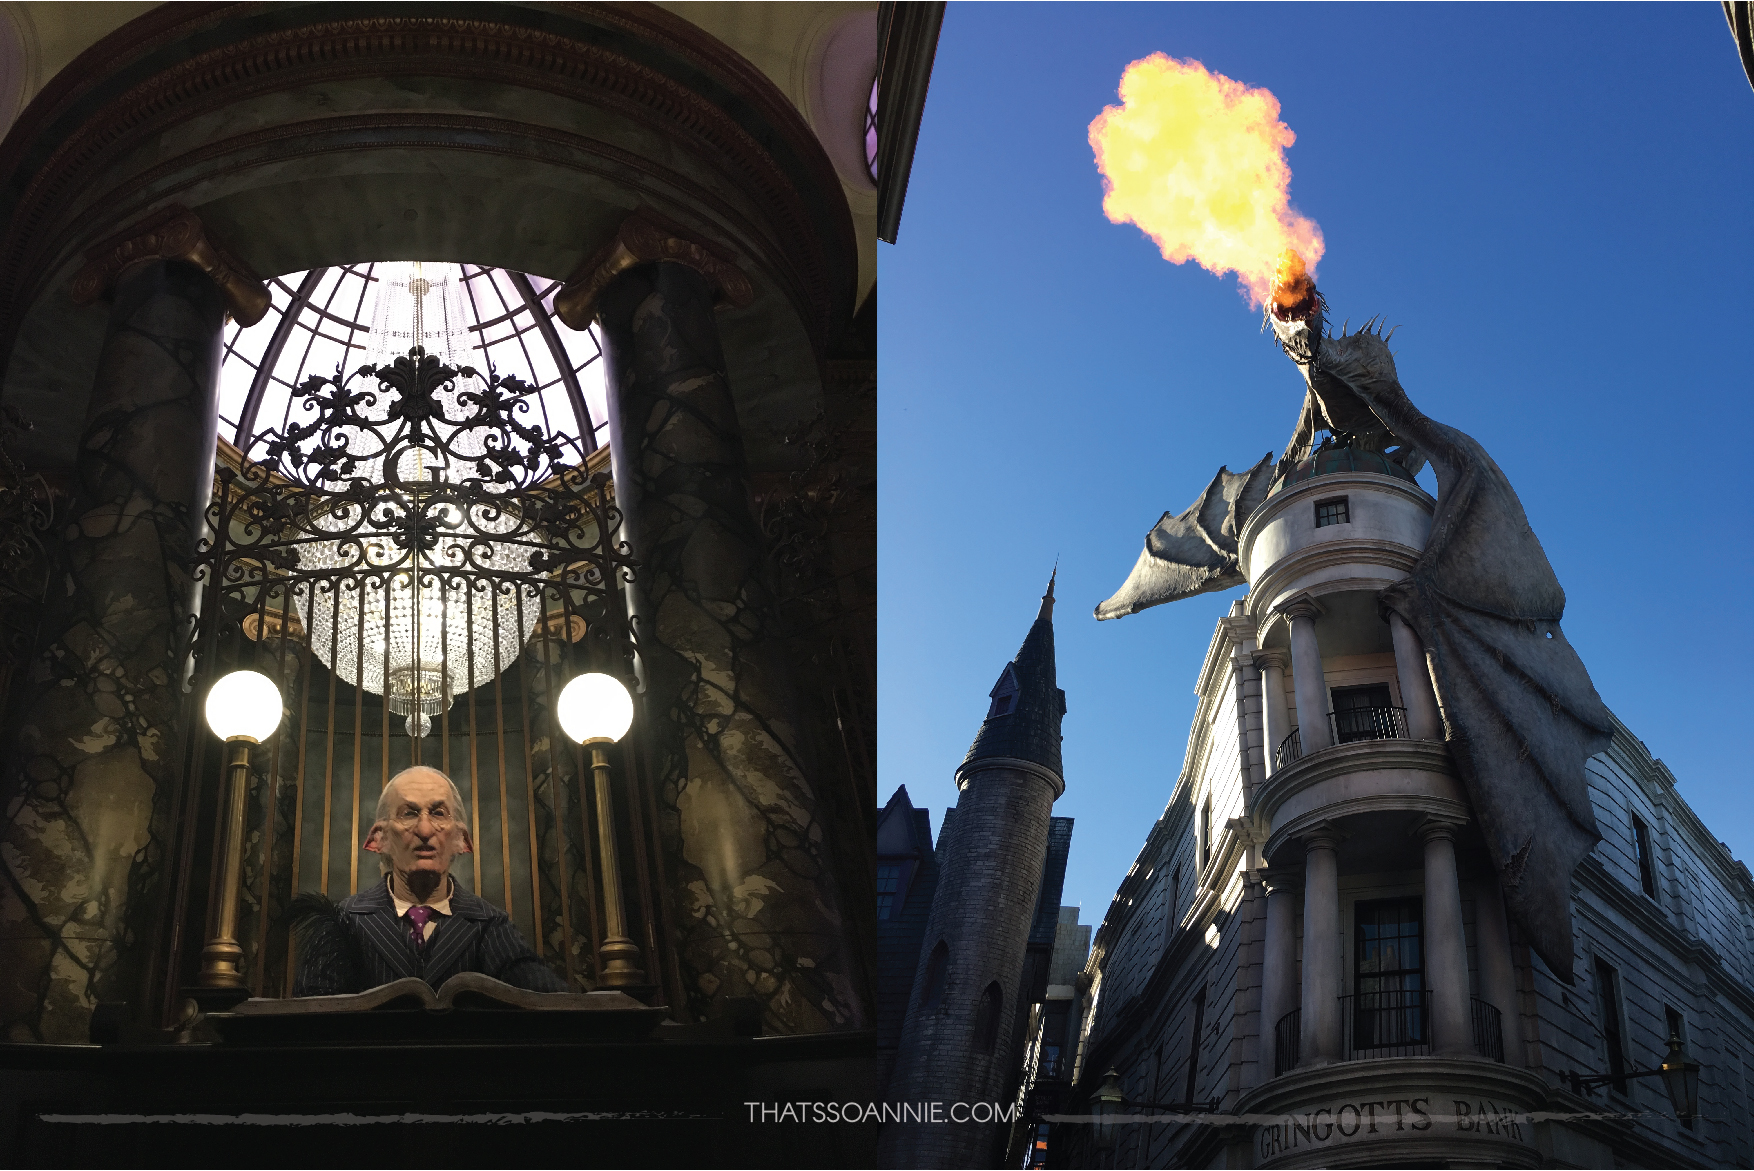 Gringotts, The Wizarding World of Harry Potter